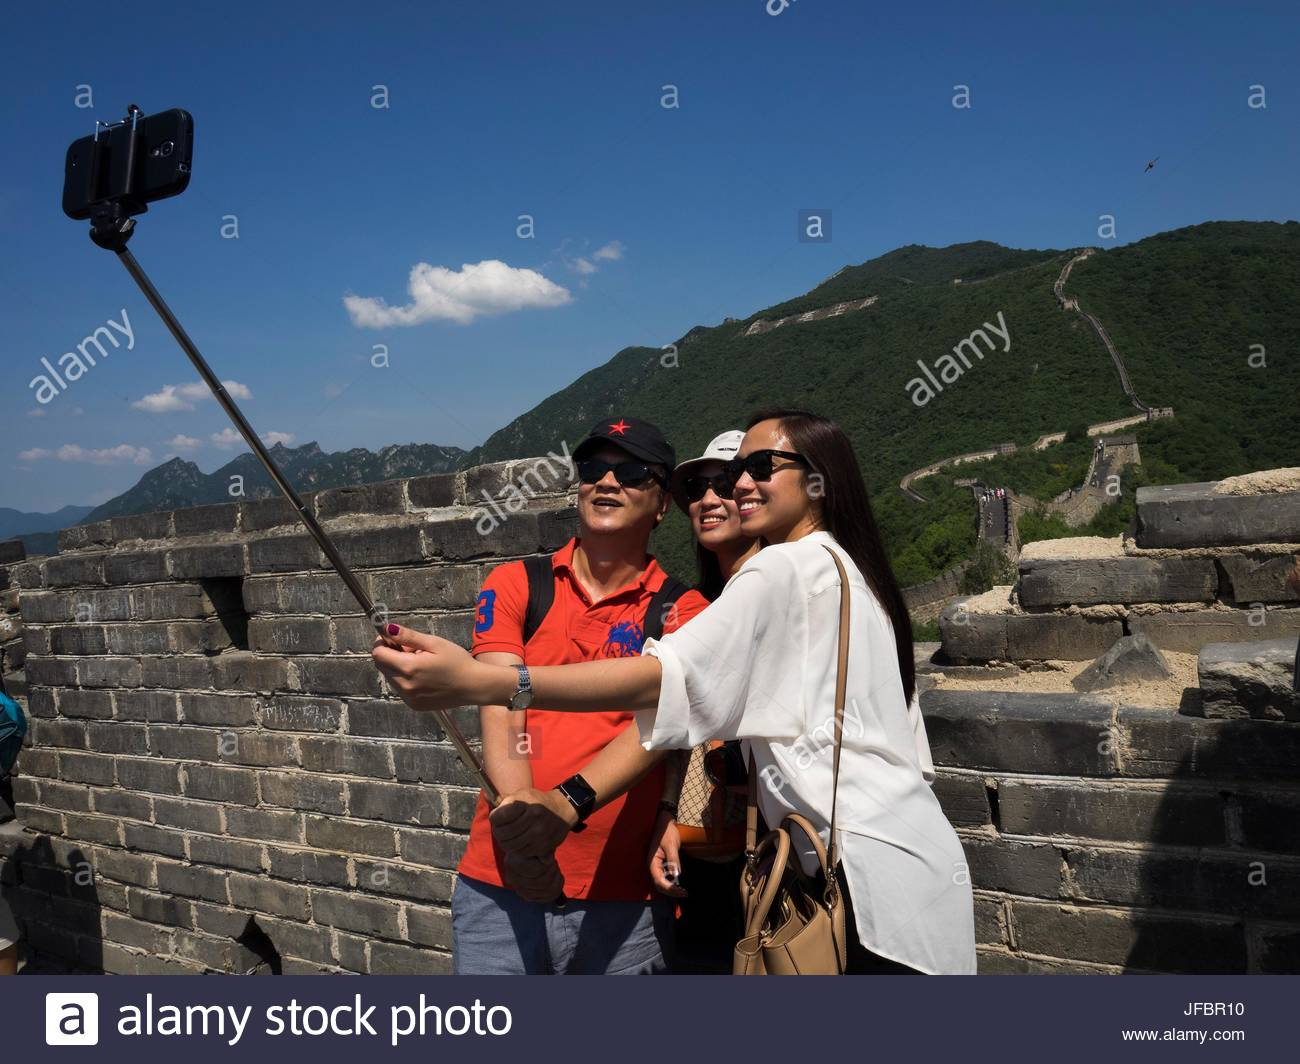 Teenagers shoot a selfie at the Great Wall of China, using a cell phone. - Stock Image